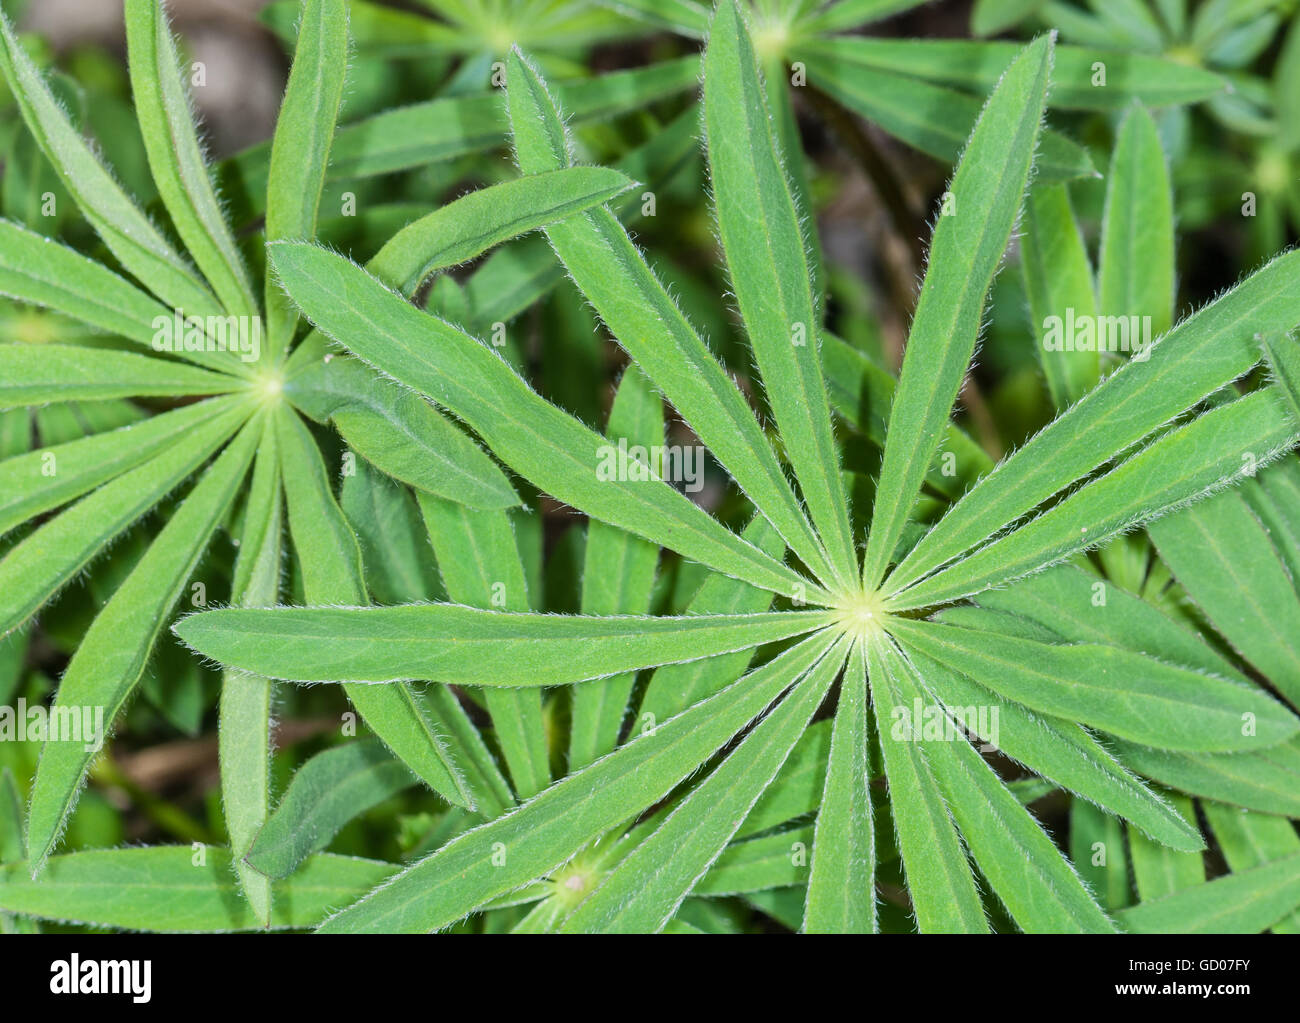 Hairy leaves of a lupine, Lupinus - Stock Image